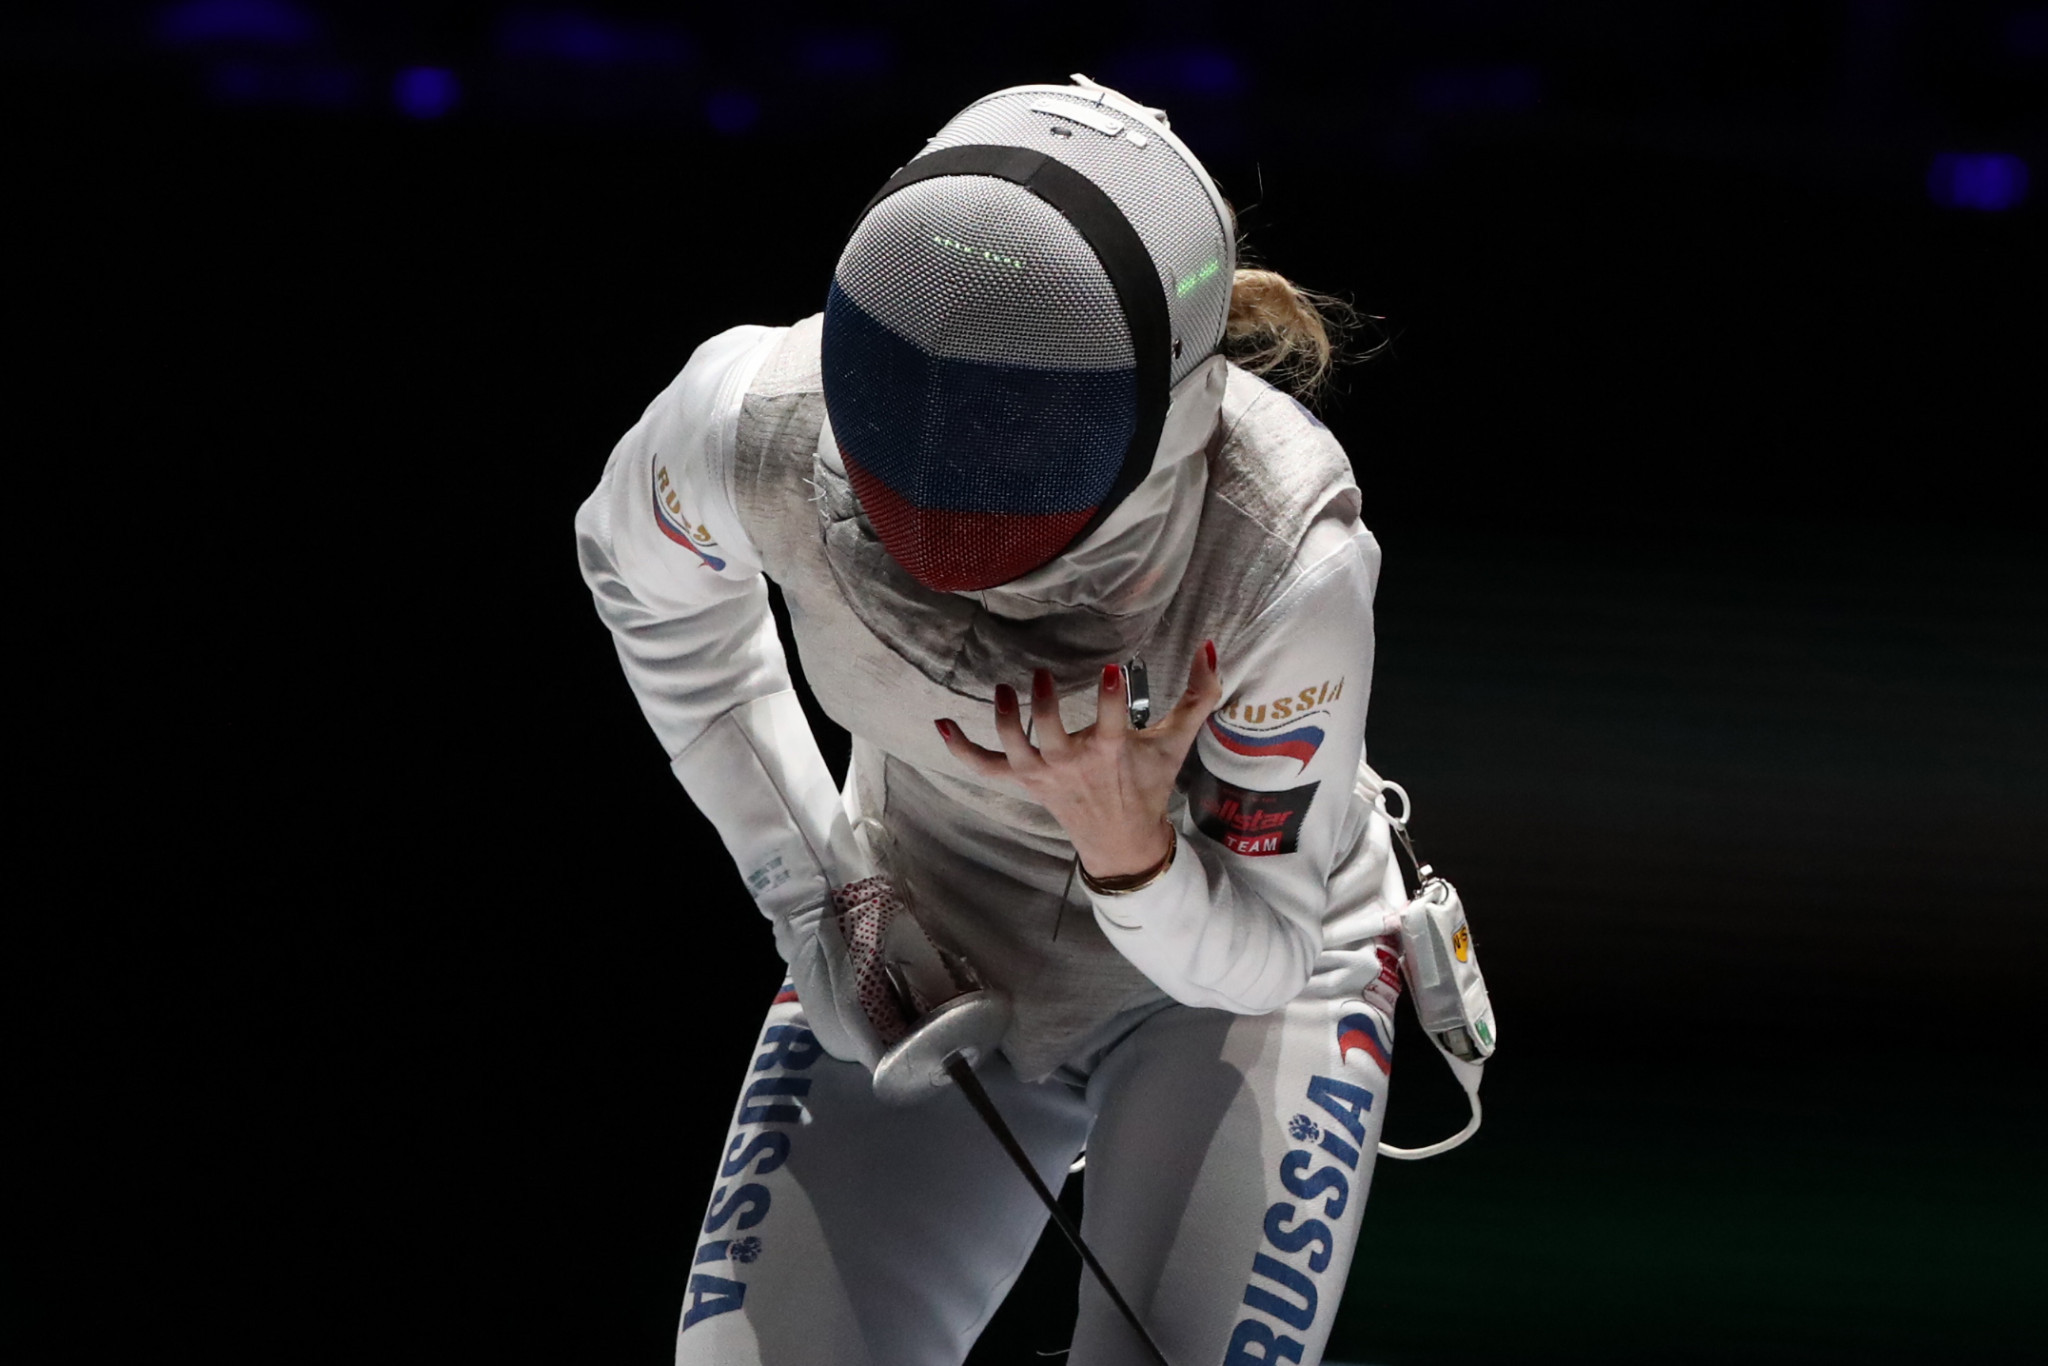 Top seed Deriglazova learns last-64 opponent at FIE Women's Foil World Cup